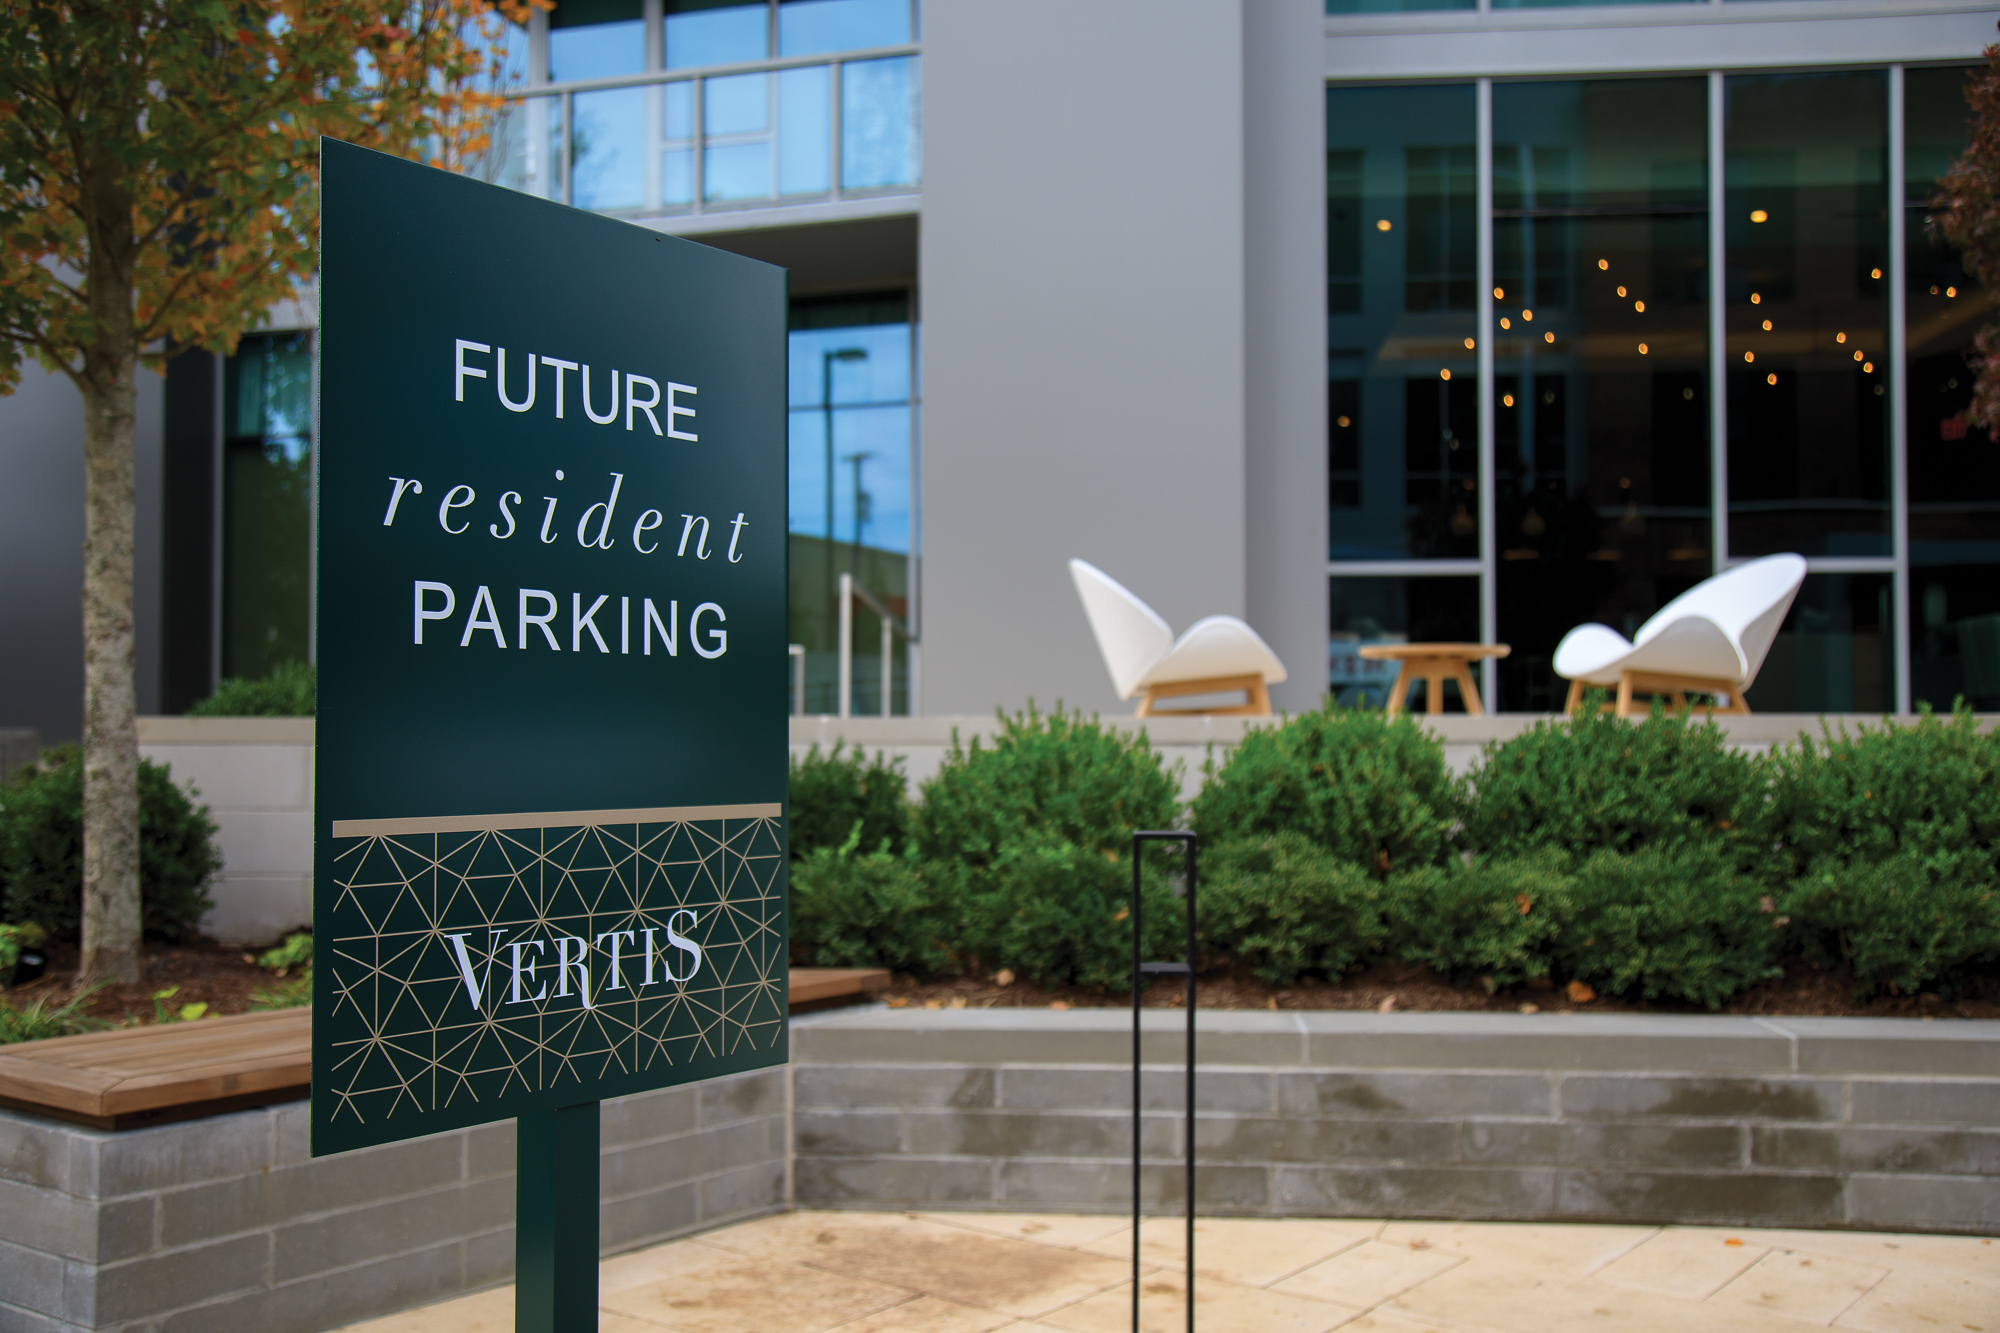 Vertis-Green-Hills_wayfinding-signage_future-resident-parking_MG_5820_small 2000 px.jpg